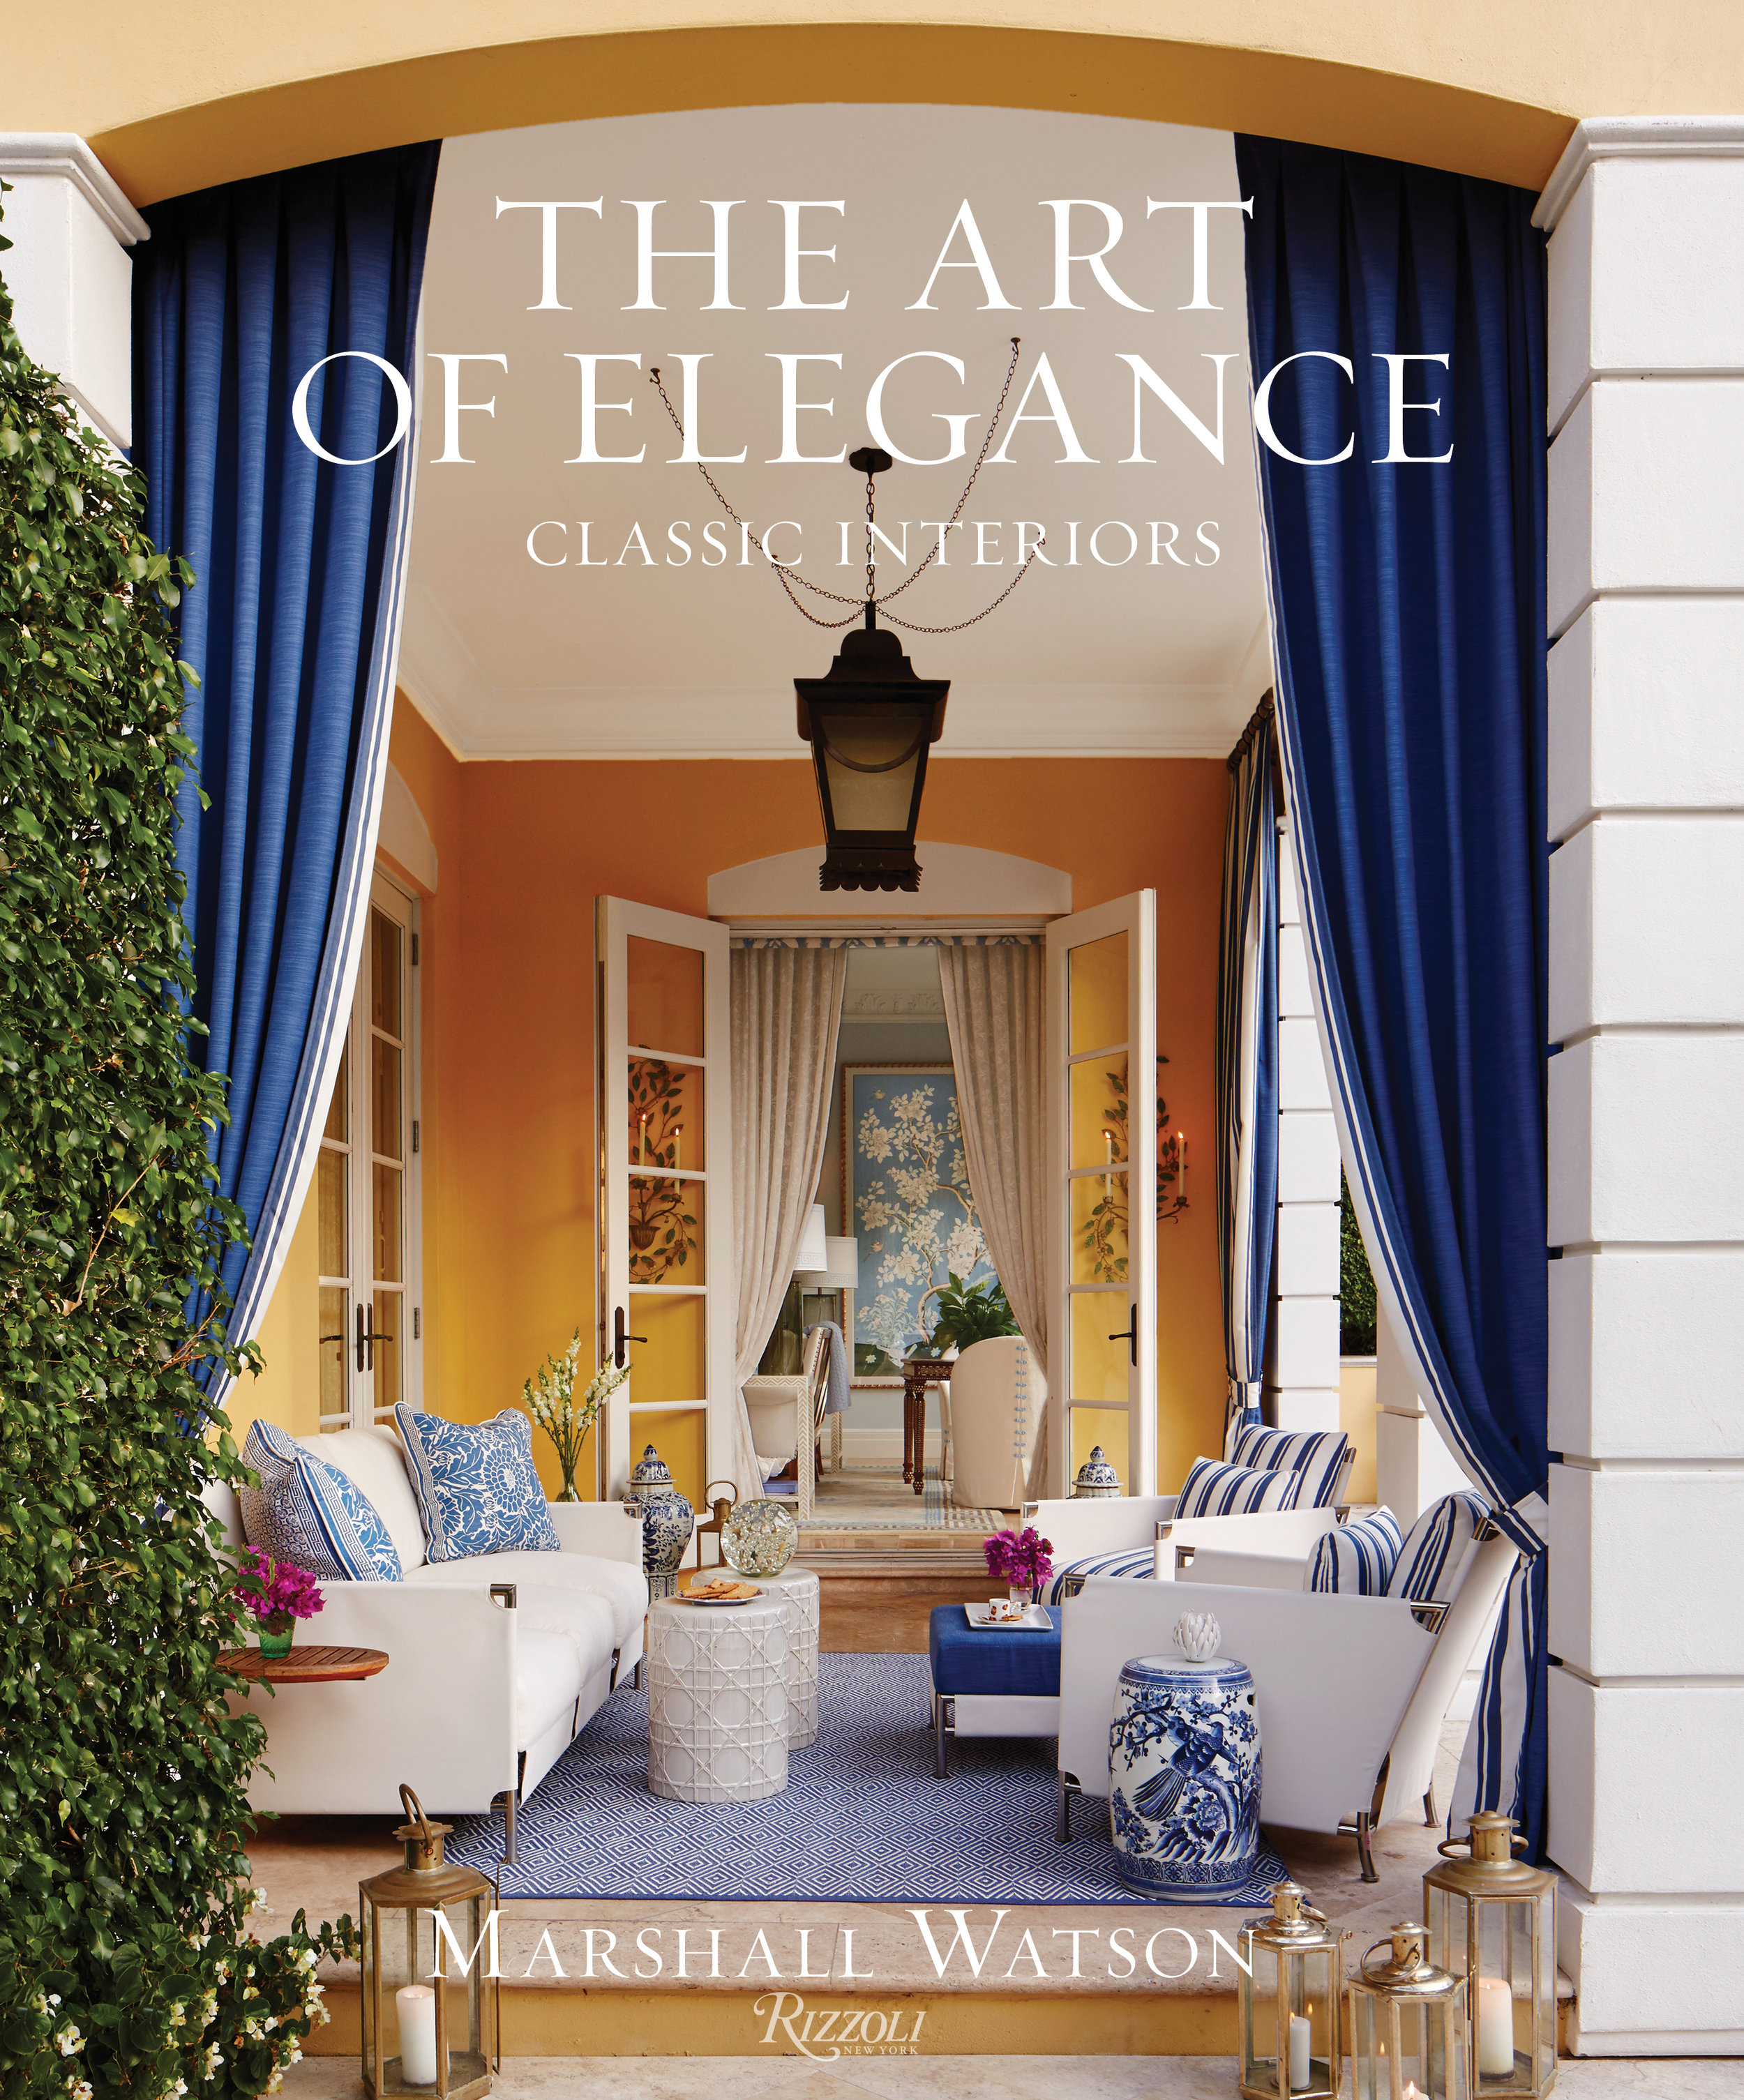 *Marshall Watson is the author of  The Art of Elegance: Classic Interiors  and periodically holds speaking engagements in St. Louis and across the country. He resides in East Hampton with his husband in a Greek Revival style home overlooking Gardiners Bay.